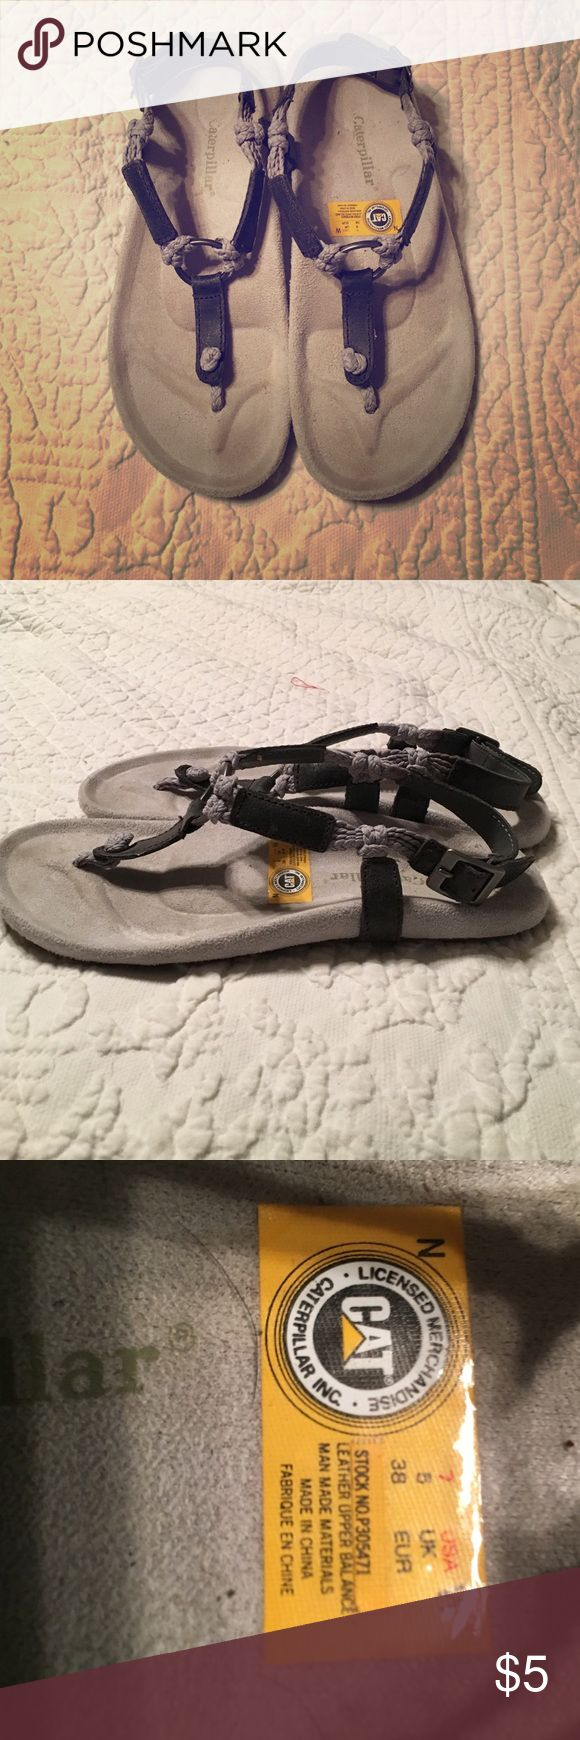 Women's gray sandals Women's gray sandals, leather and rope material, metal side buckle and center circle, only worn twice! Caterpillar Shoes Sandals